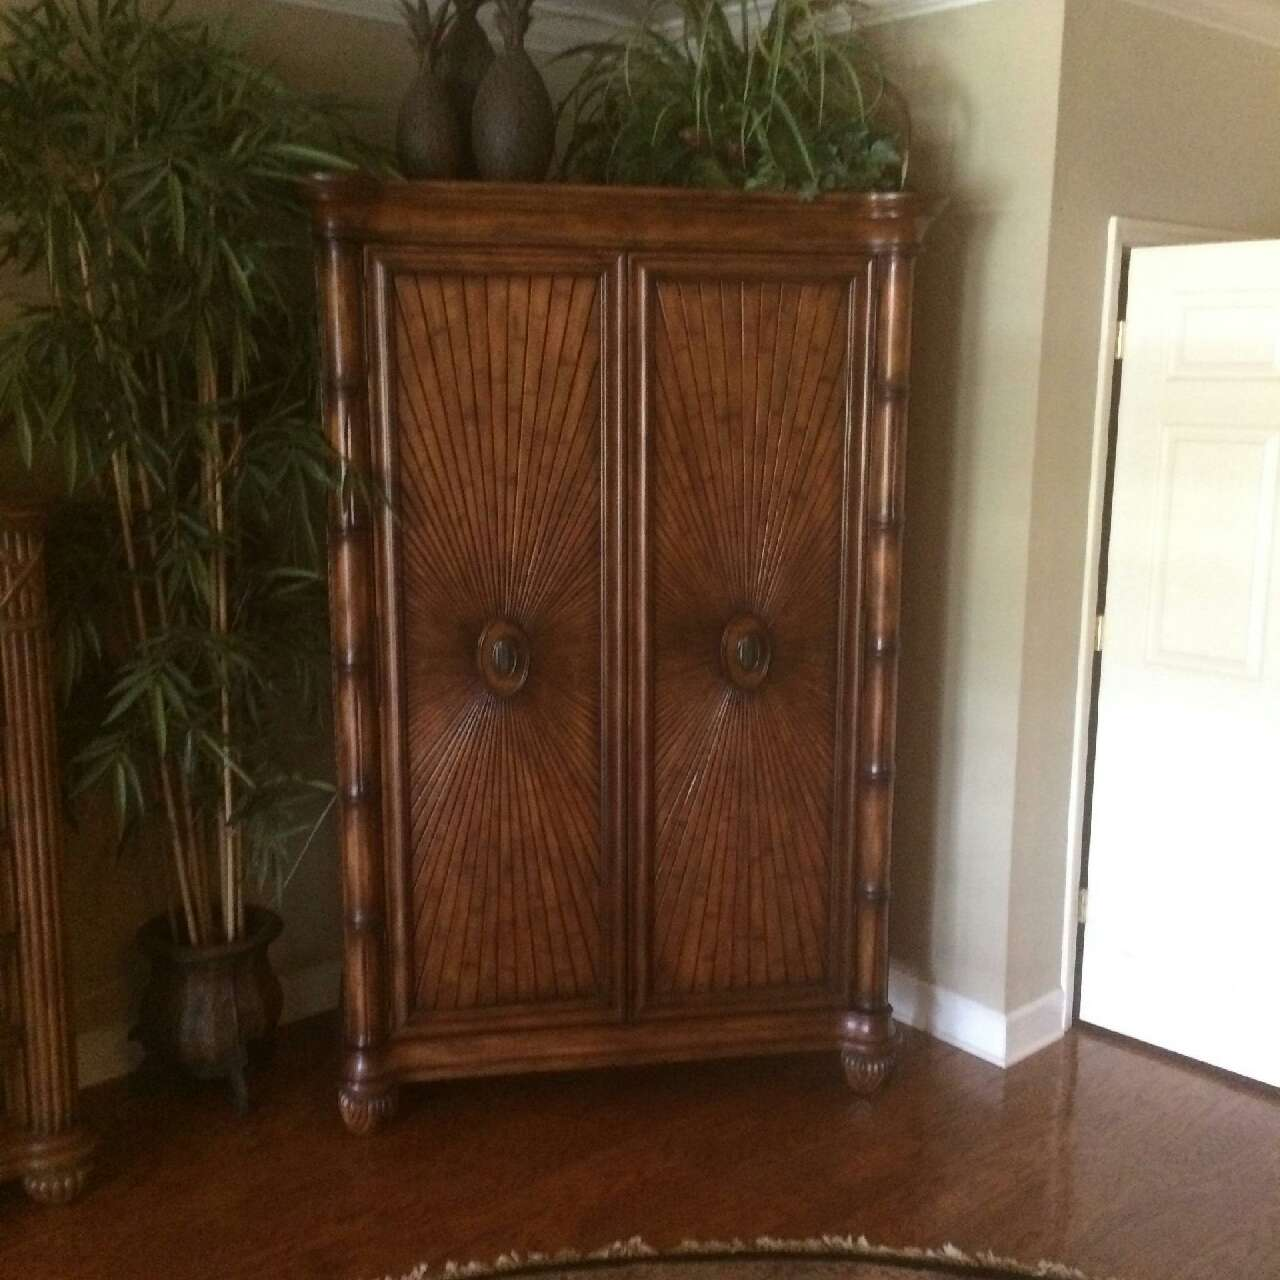 Superb img of Home Florida Safety Harbor Home and Garden padma Armoire Tv  with #382511 color and 1280x1280 pixels